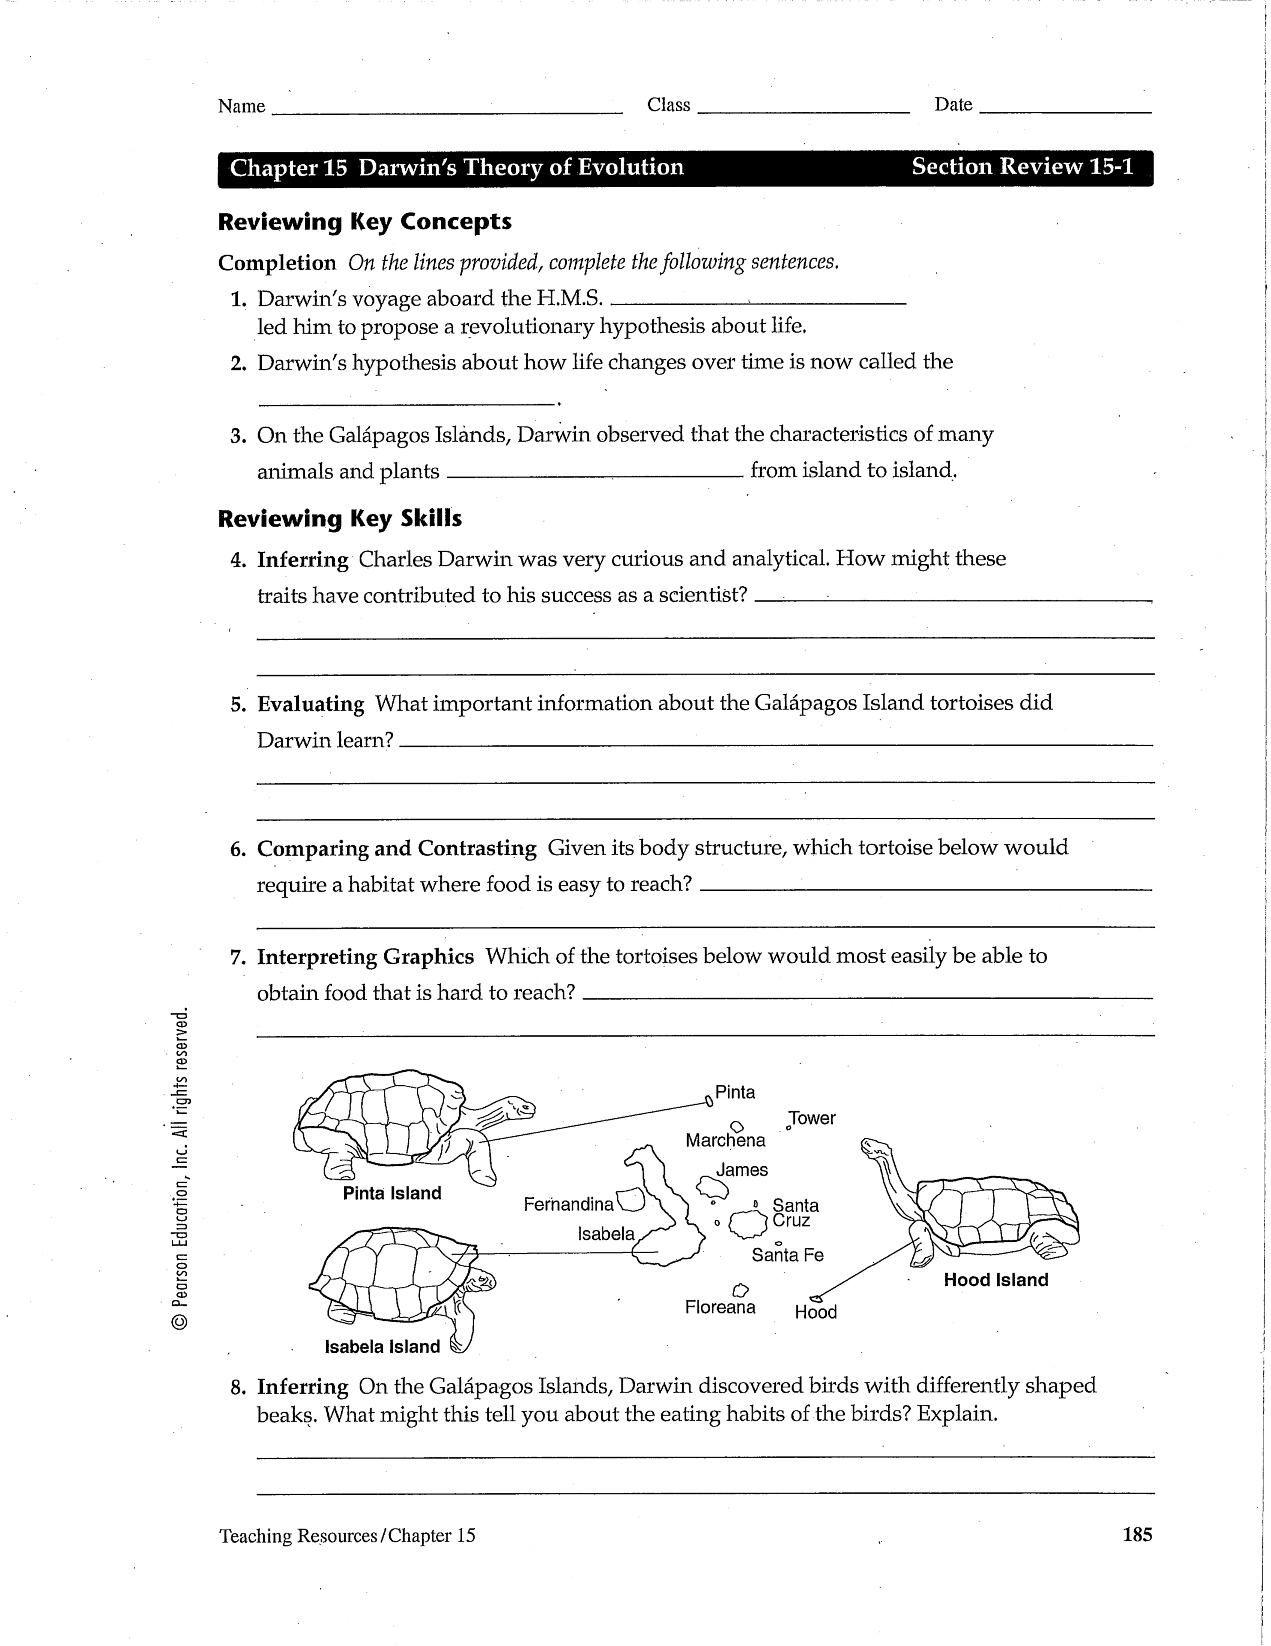 Free Worksheet Evolution Worksheet darwins theory of evolution worksheet chapter 15 reviewing key concepts